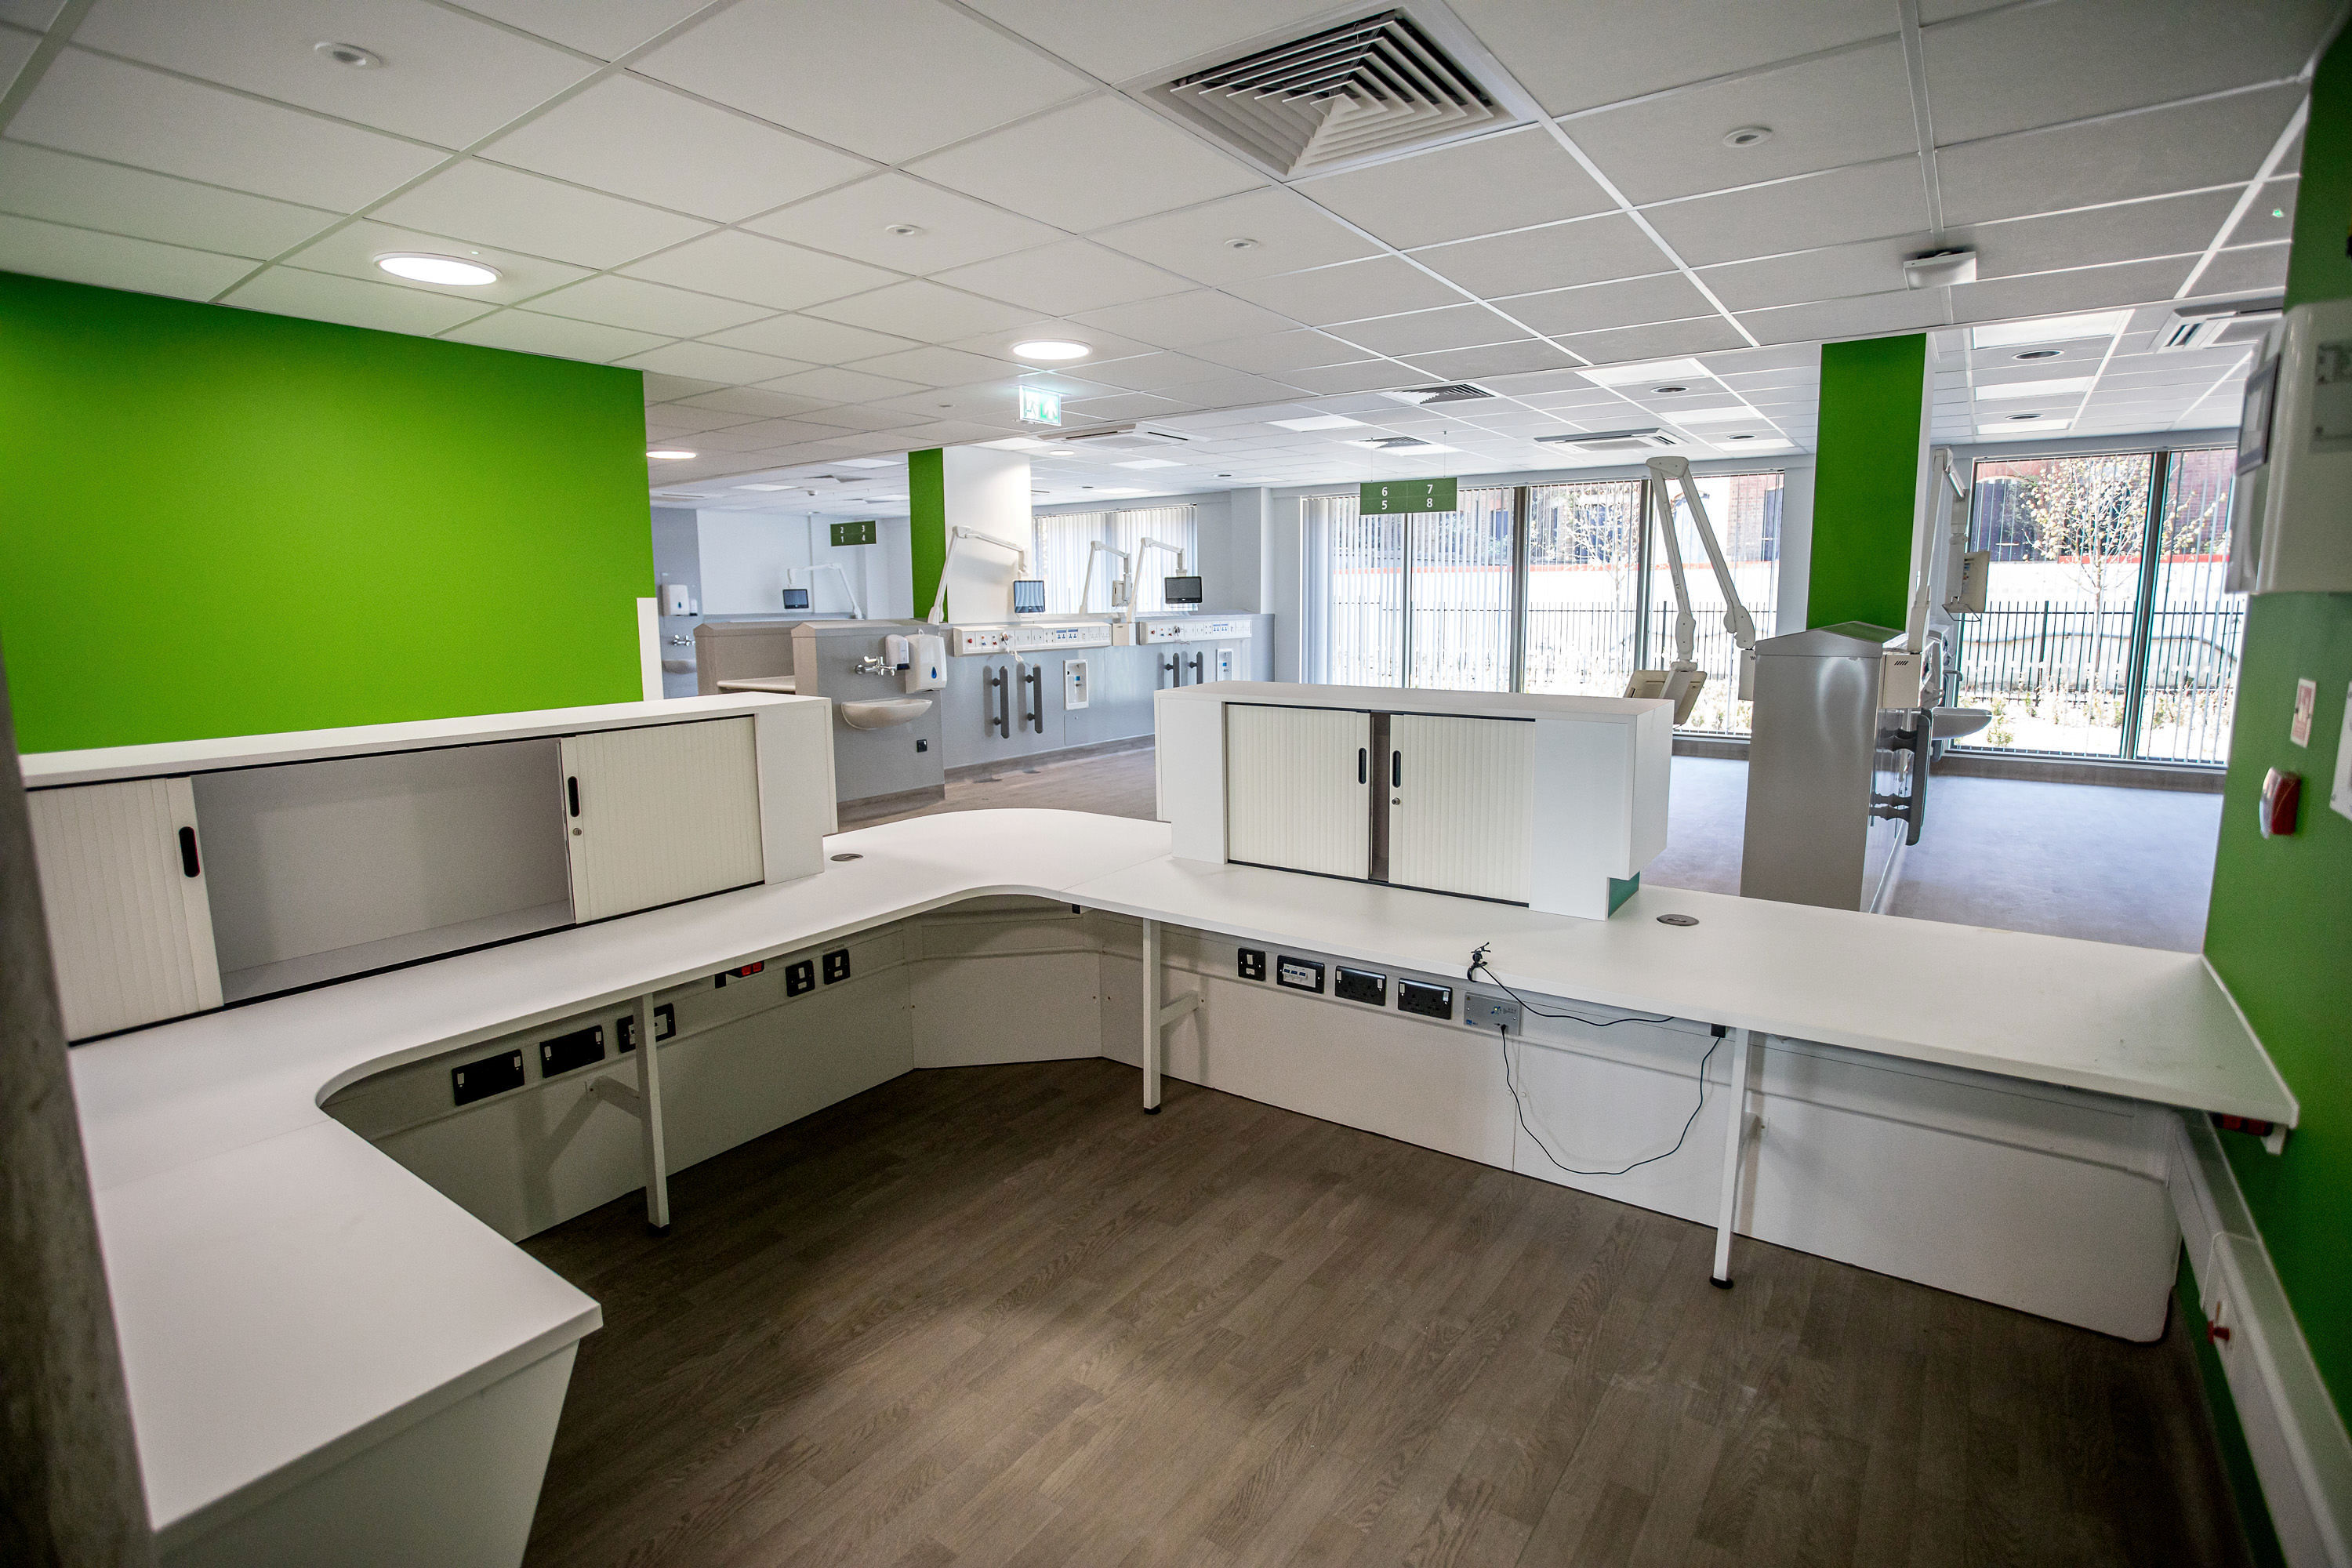 Tessa Jowell healthcentre in Dulwich - internal 2.jpg